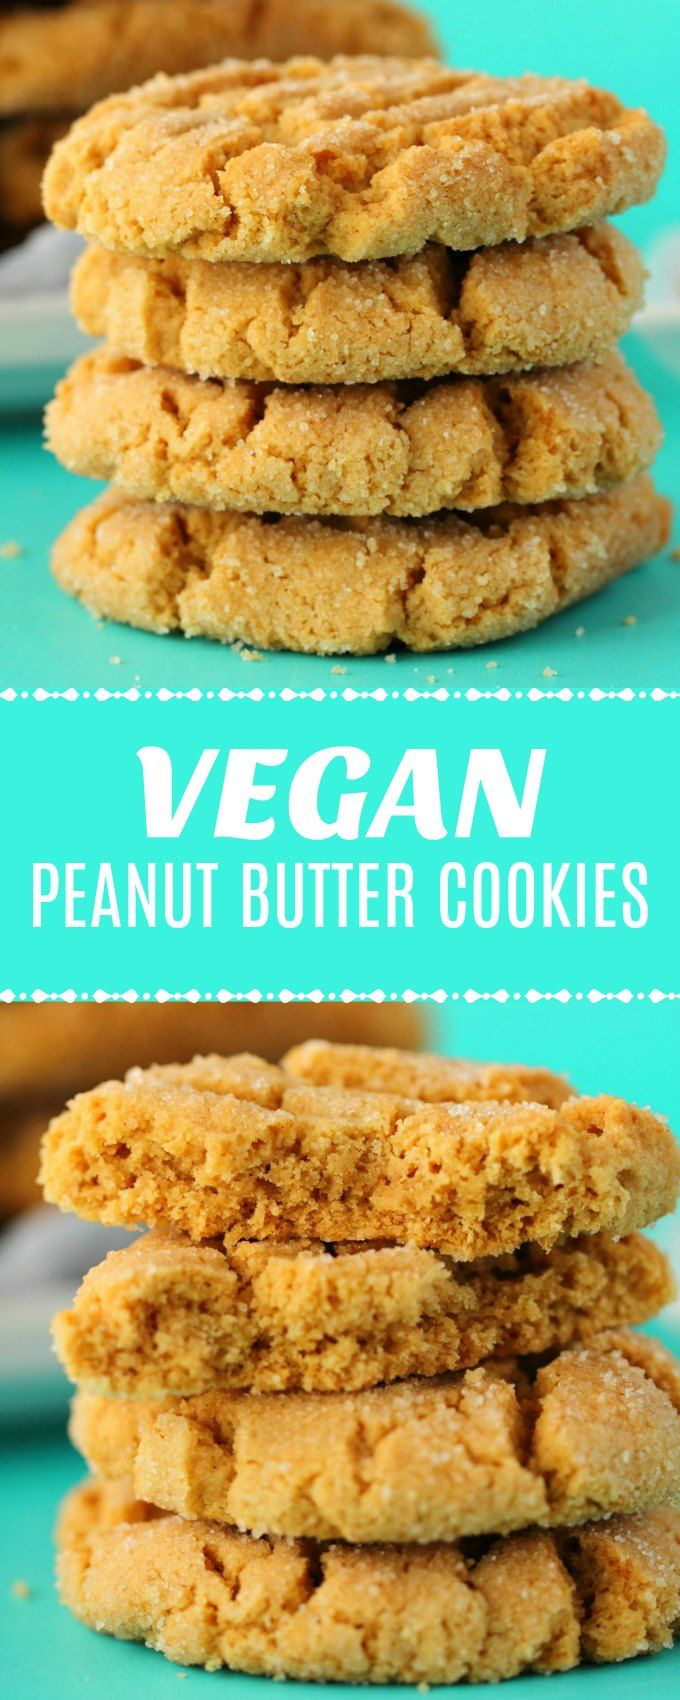 Vegan peanut butter cookies that are wonderfully c…